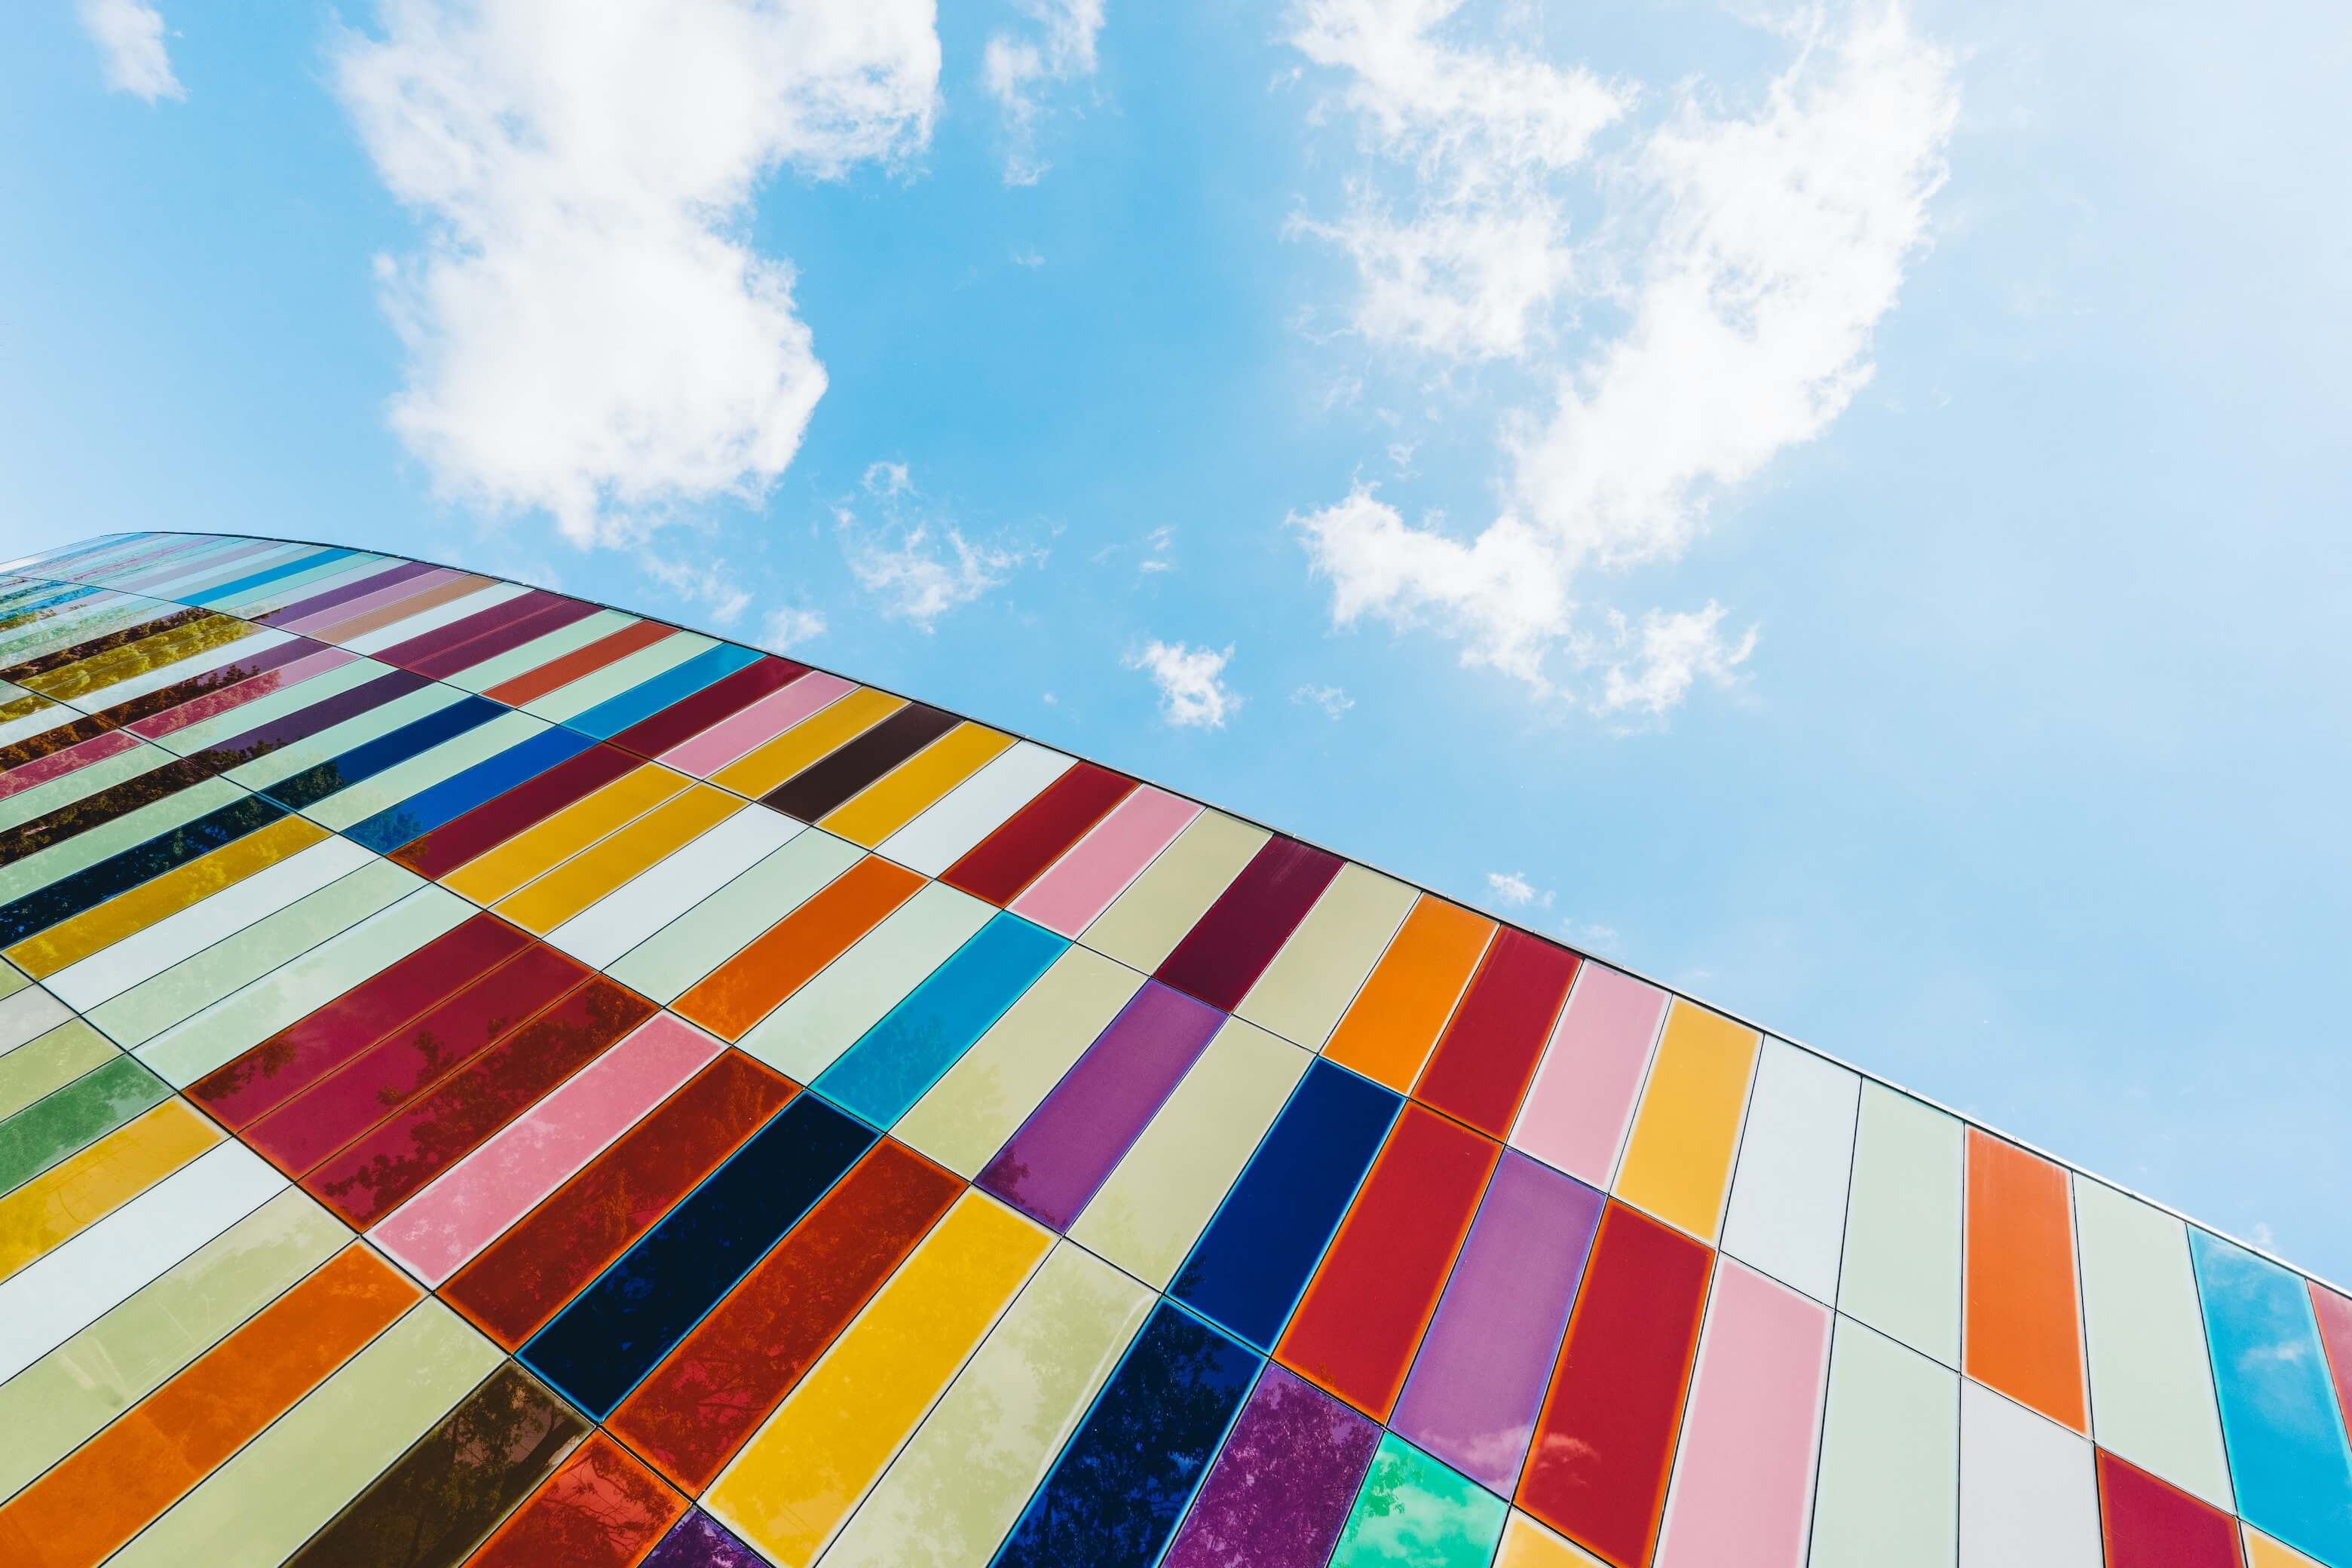 Blue sky behind a building with many colorful, rectangular tiles